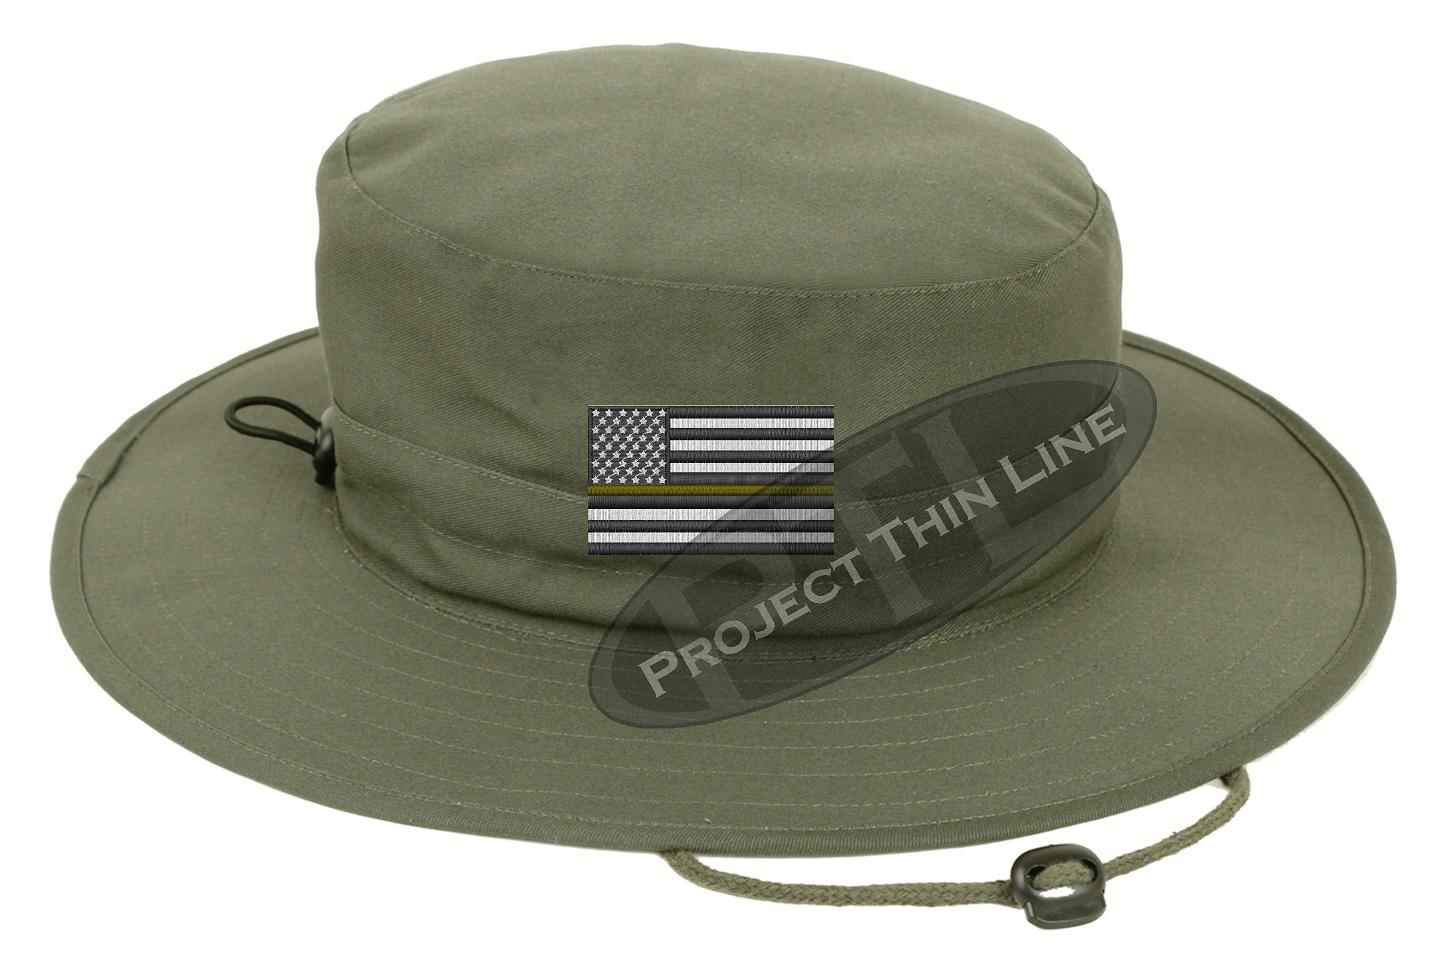 Olive Green Boonie hat embroidered with a Thin Gold Line Subdued American  Flag 8f1bd354c12